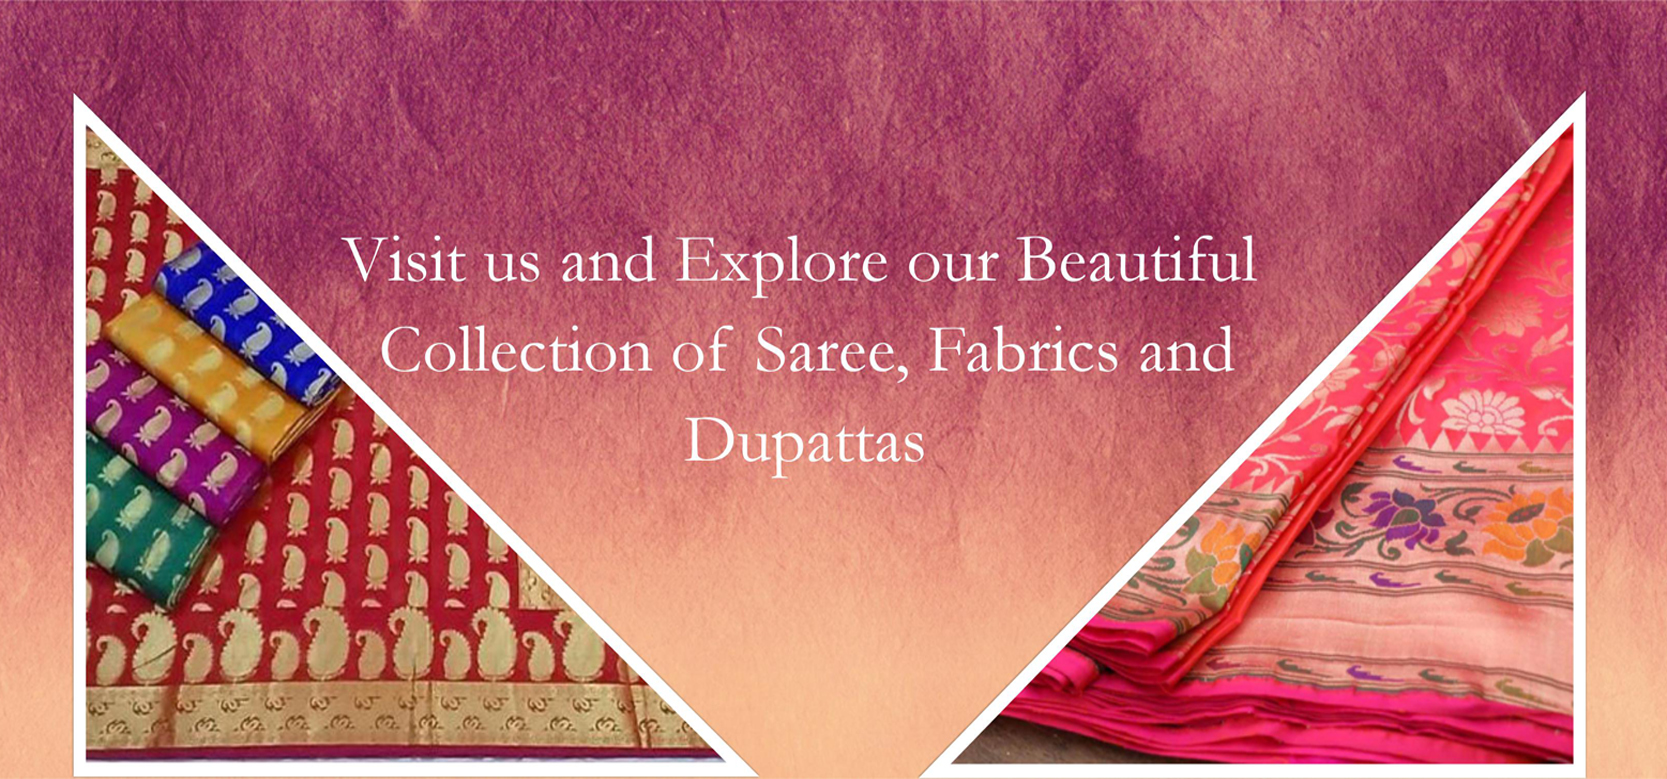 About Silkways Saree Collections